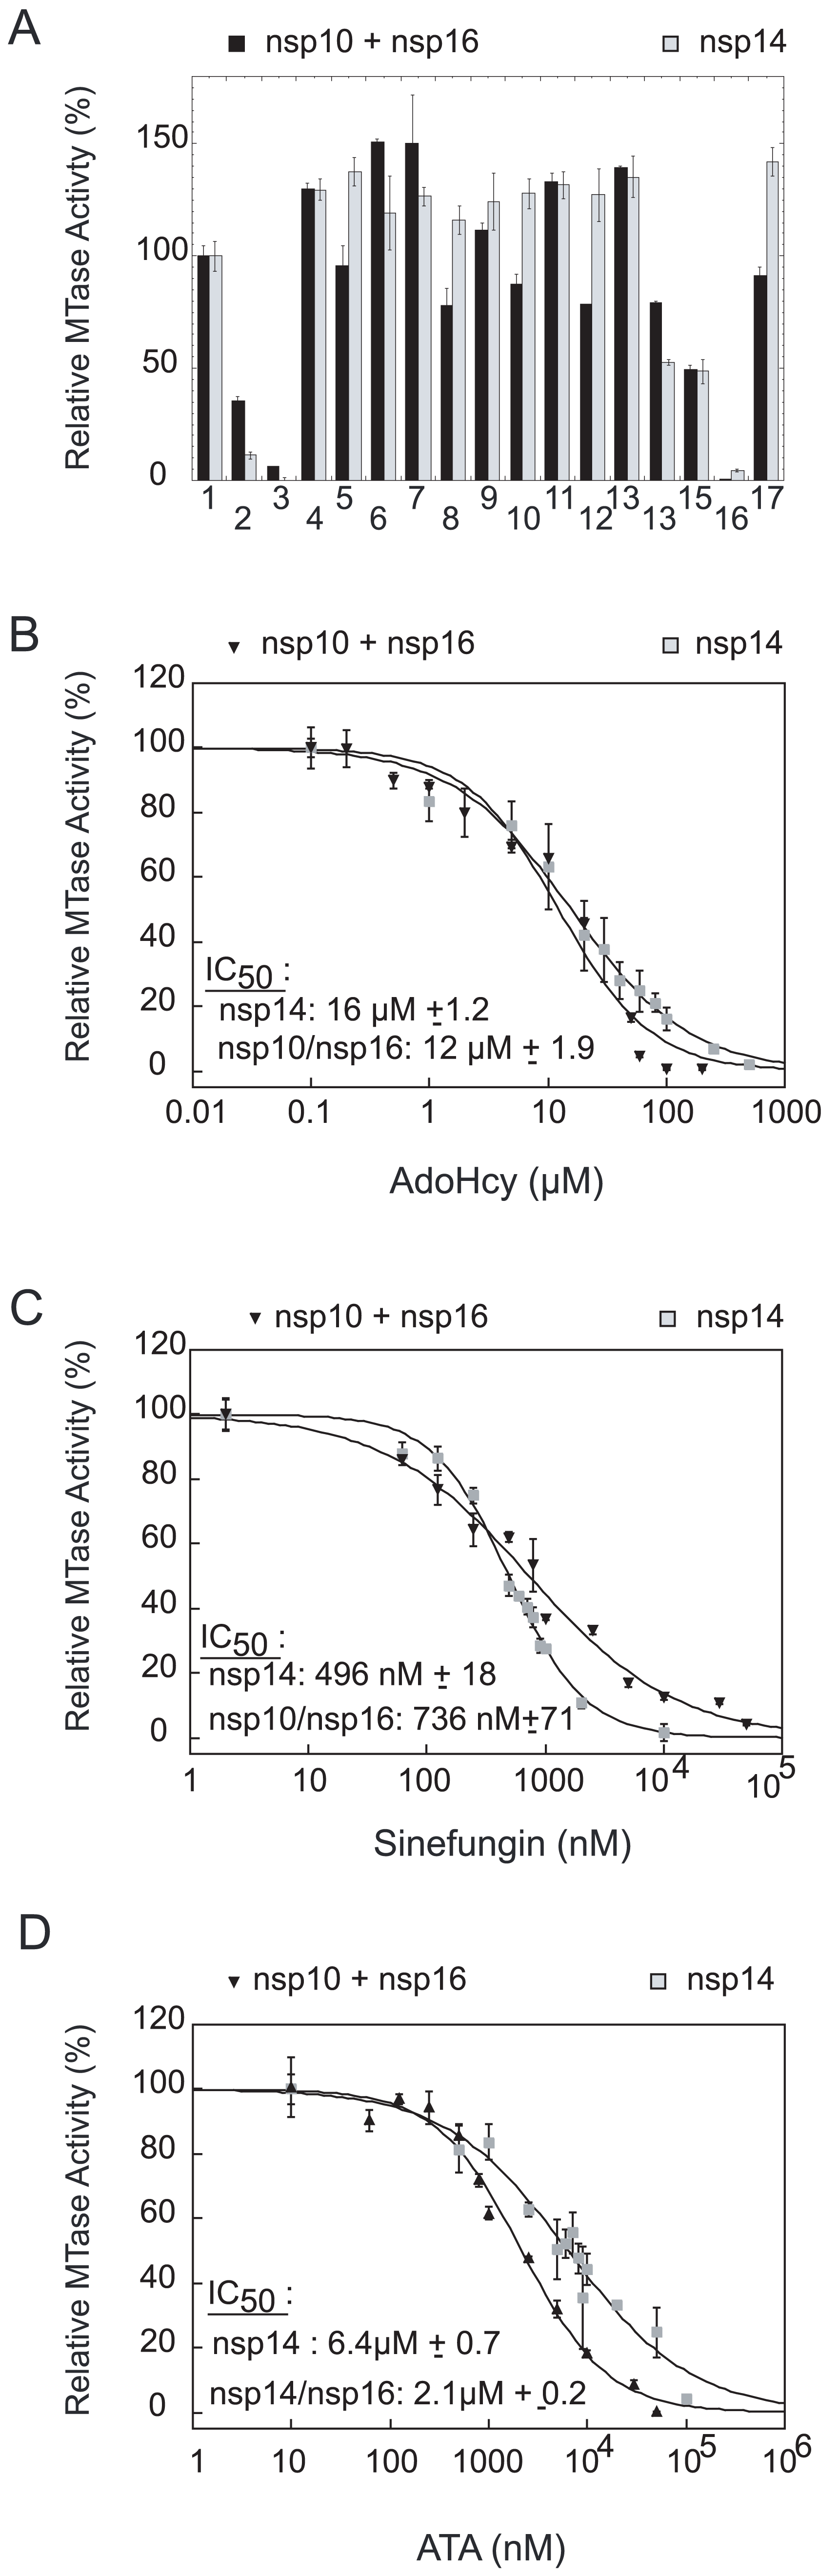 Inhibition of the nsp14 and nsp16/nsp10 MTase activities.